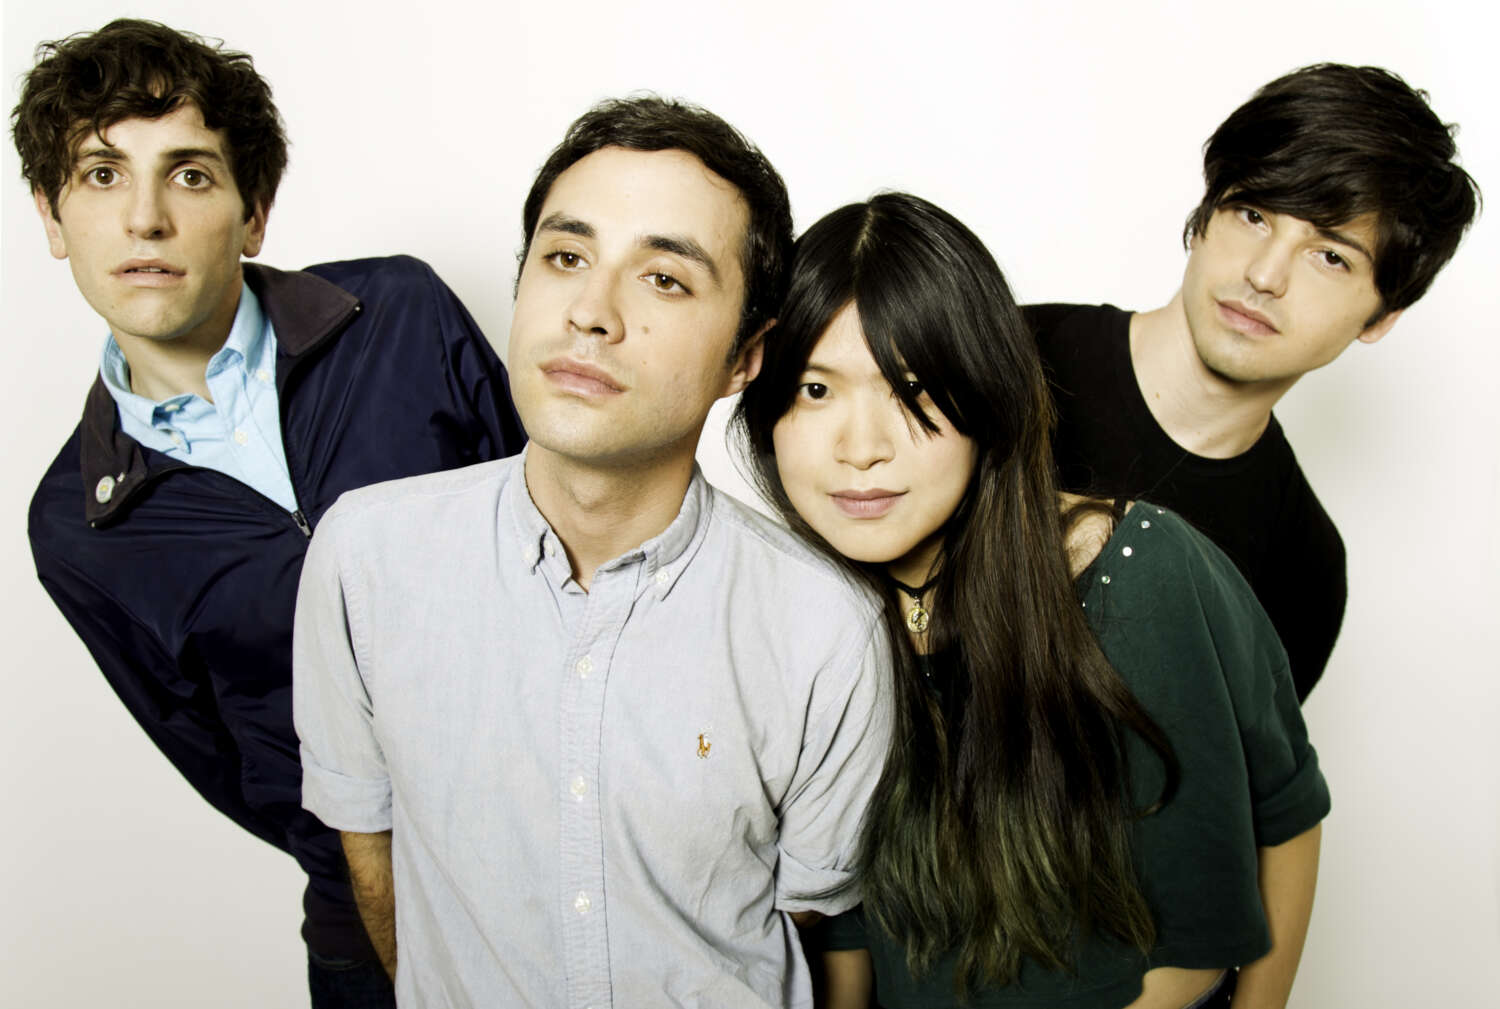 Nuovo brano, album e tour mondiale per i Pains Of Being Pure At Heart [Listen]